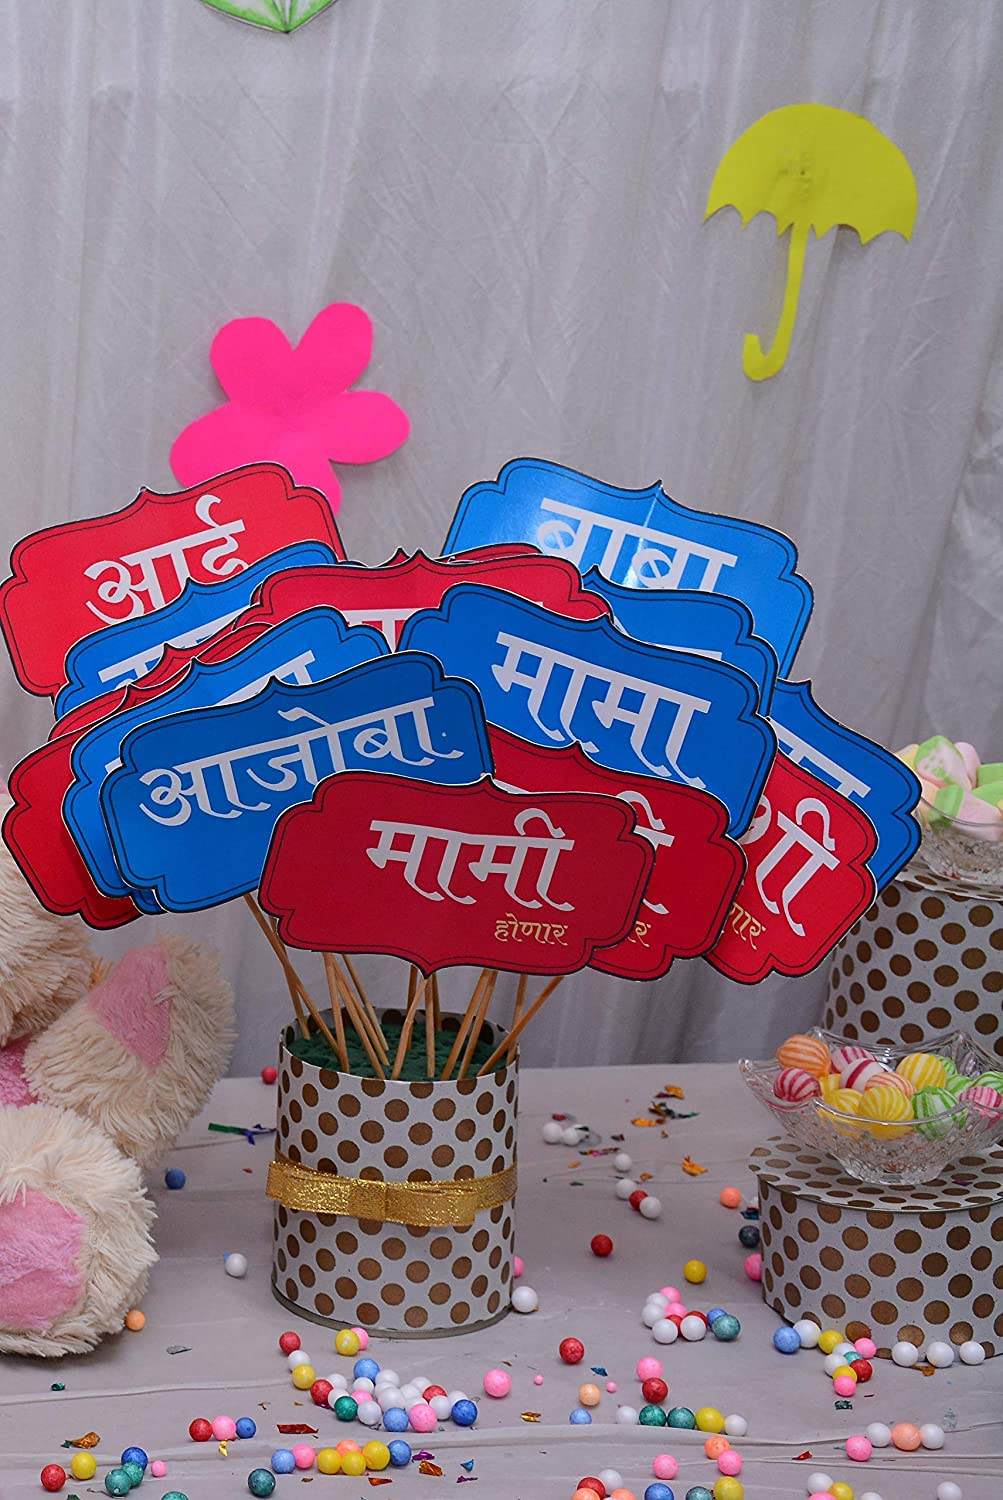 Twister King Marathi Baby Shower Props 16 Pieces Amazon In Electronics